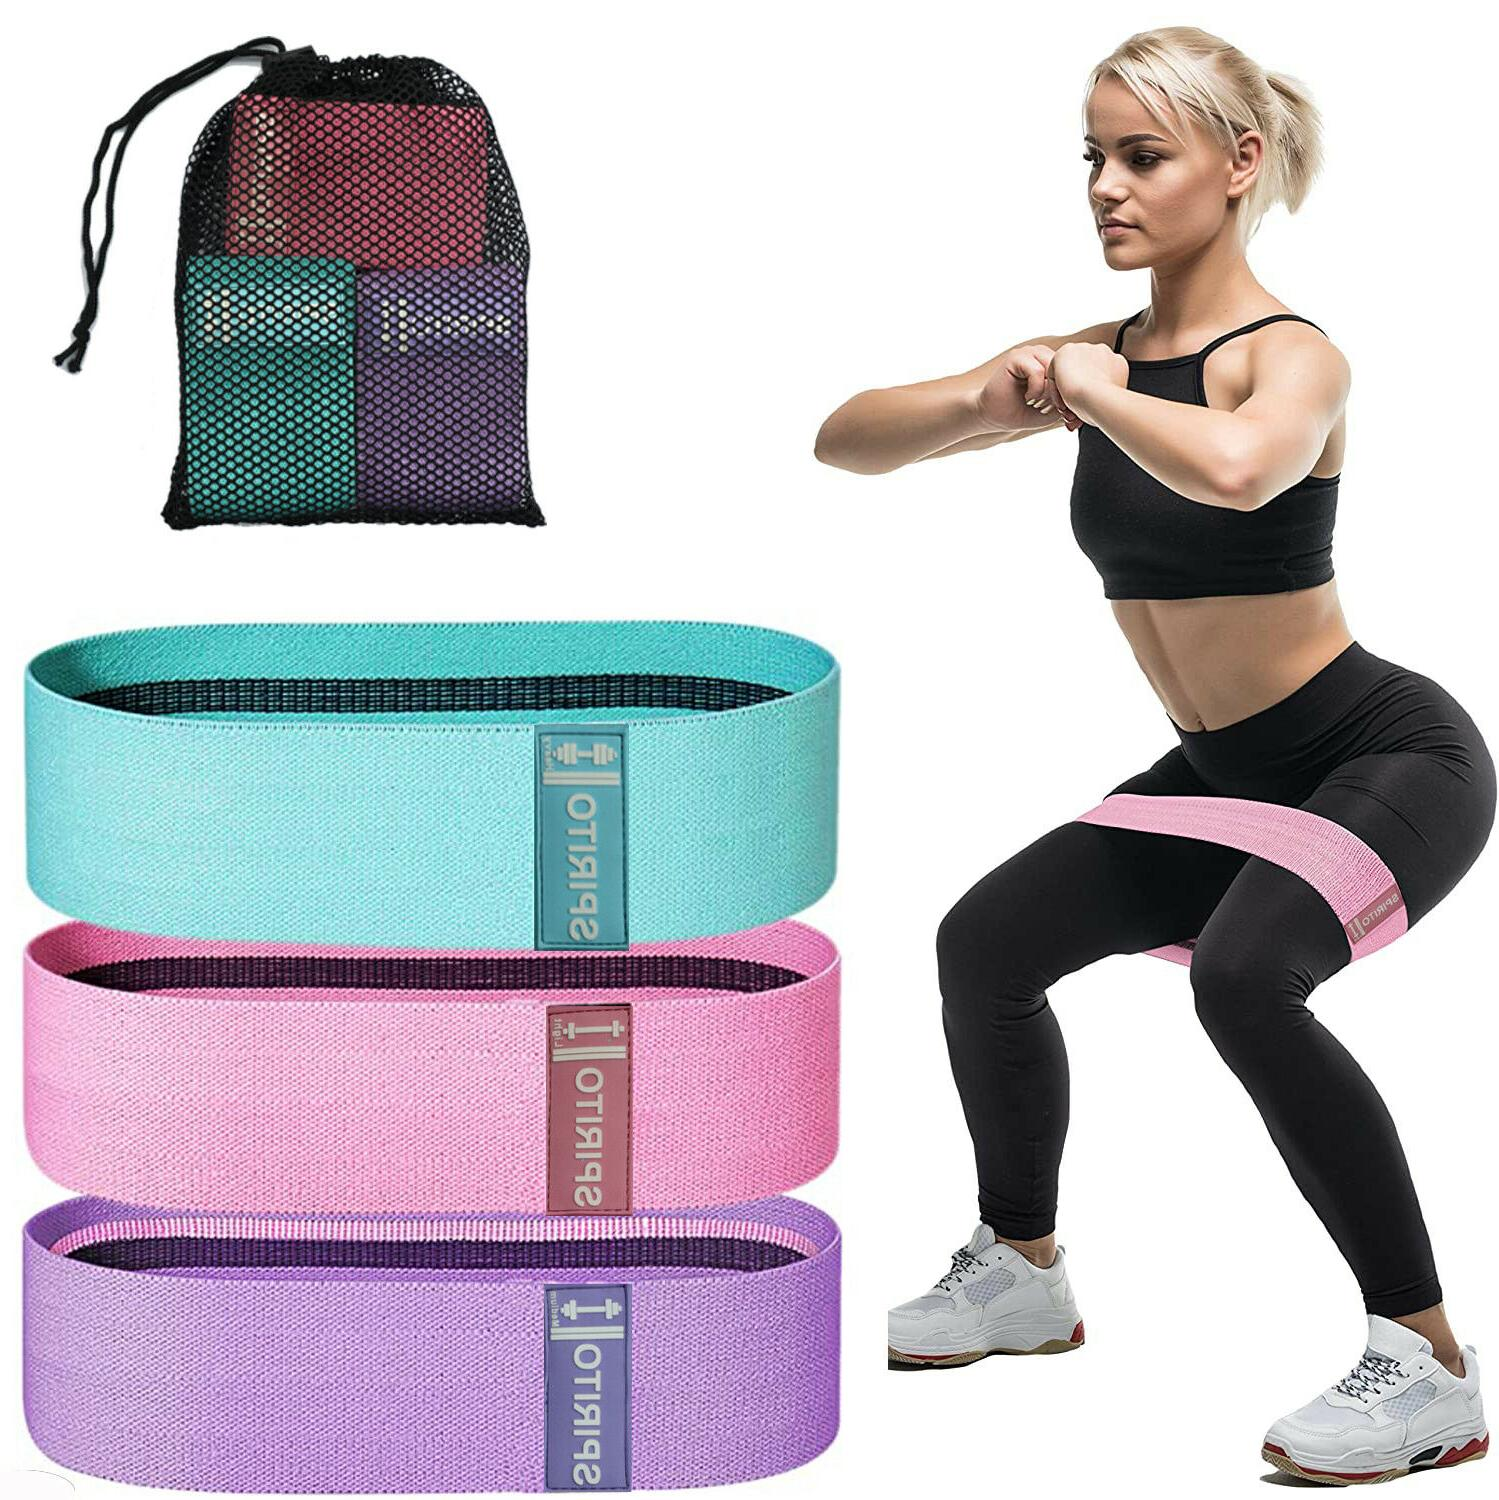 cloth fabric resistance booty bands loop set